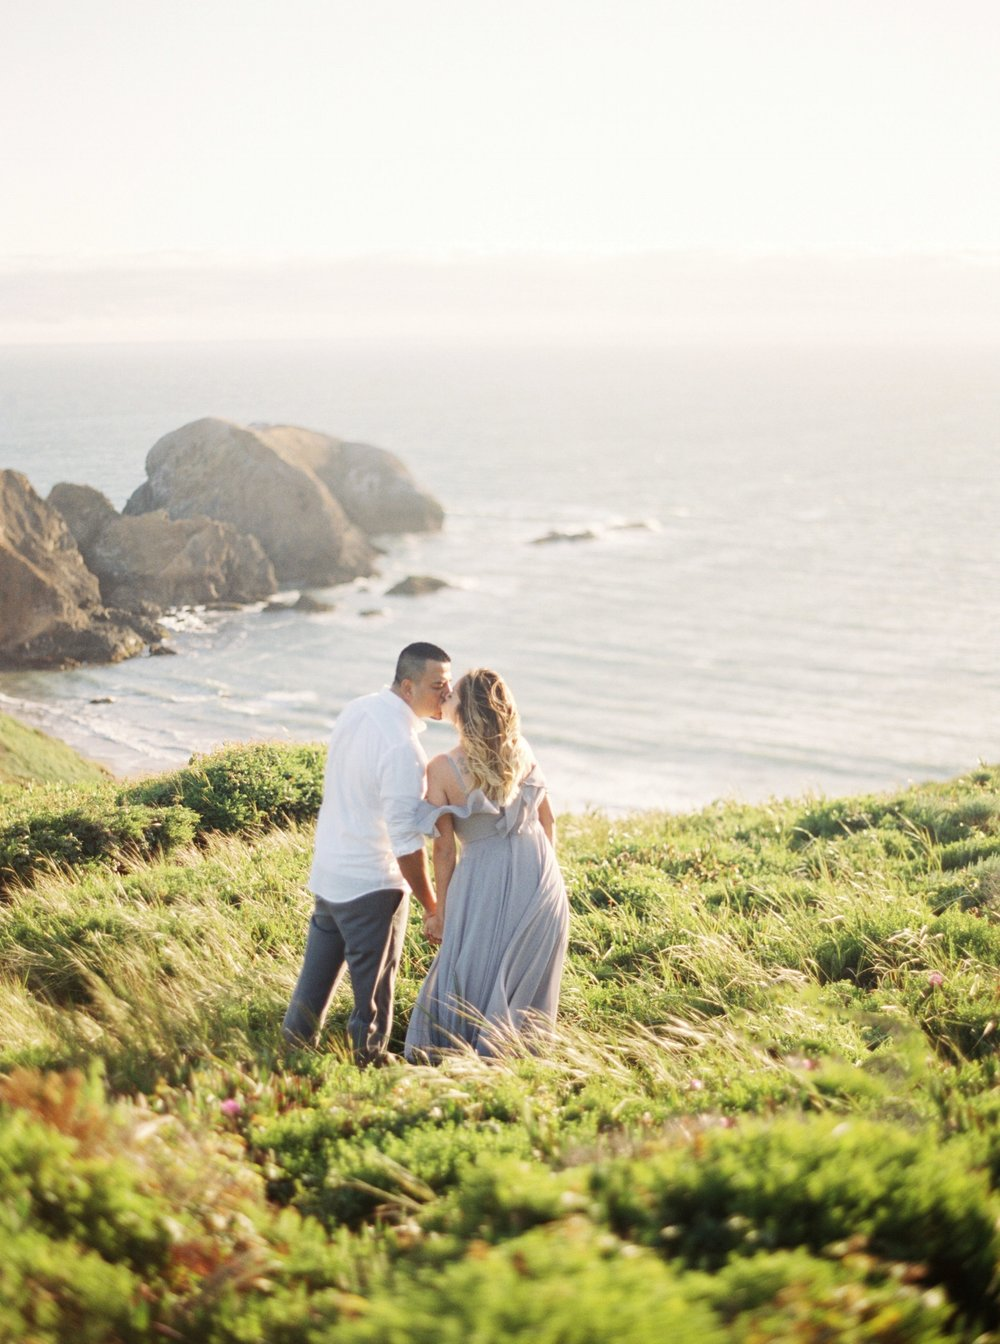 marin-headlands-anniversary-session-louie+elena-07.html